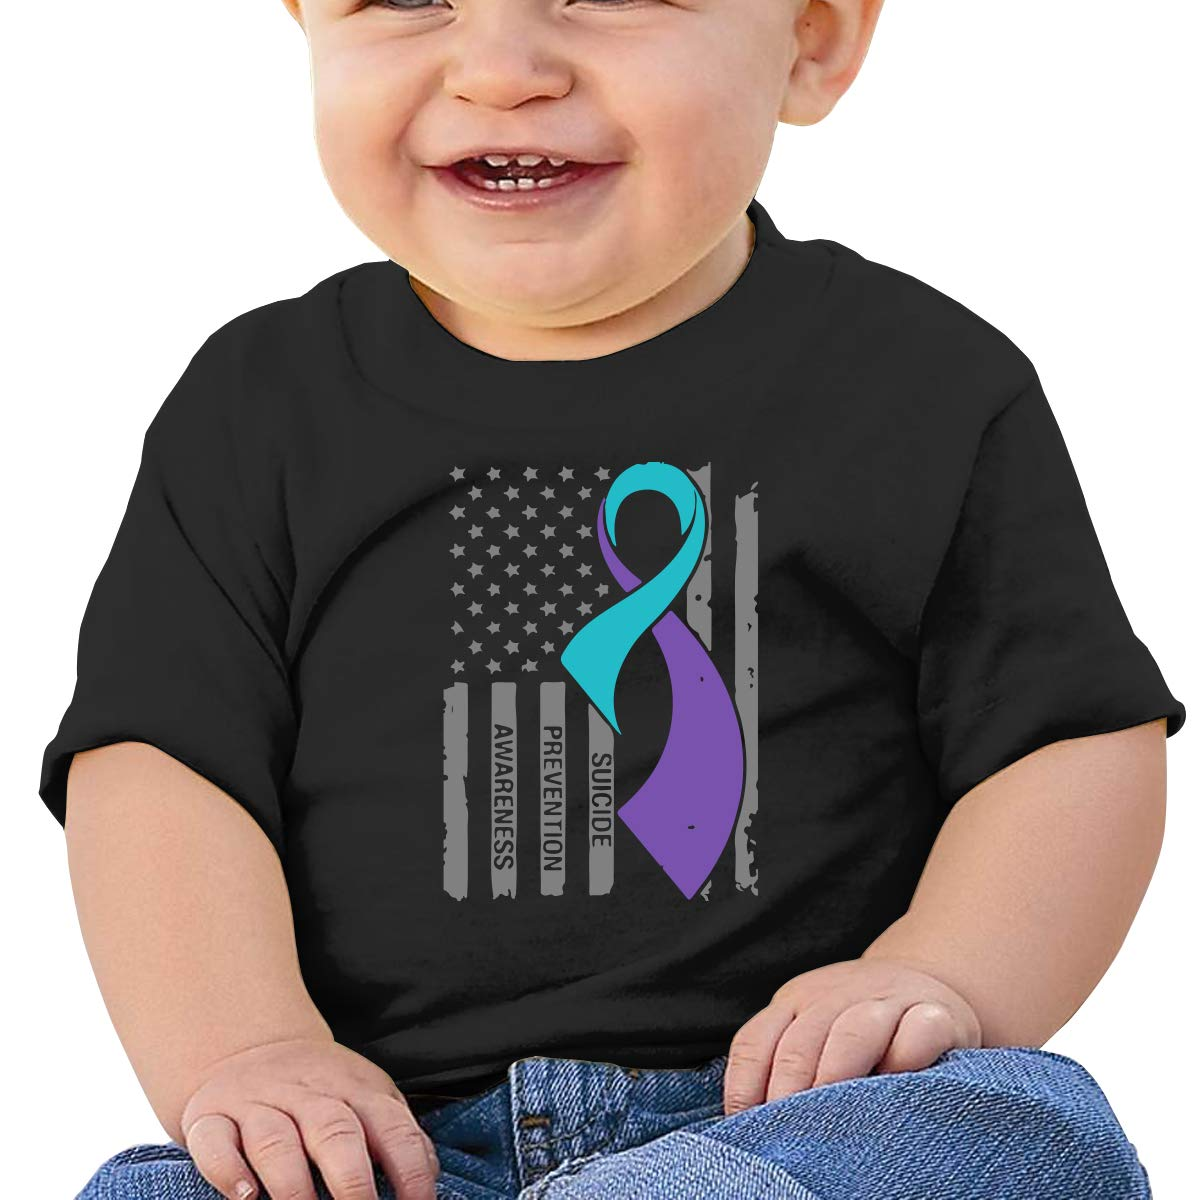 Suicide Prevention Awareness Flag Baby Boy Newborn Short Sleeve T Shirts 6-24 Month Soft Tops